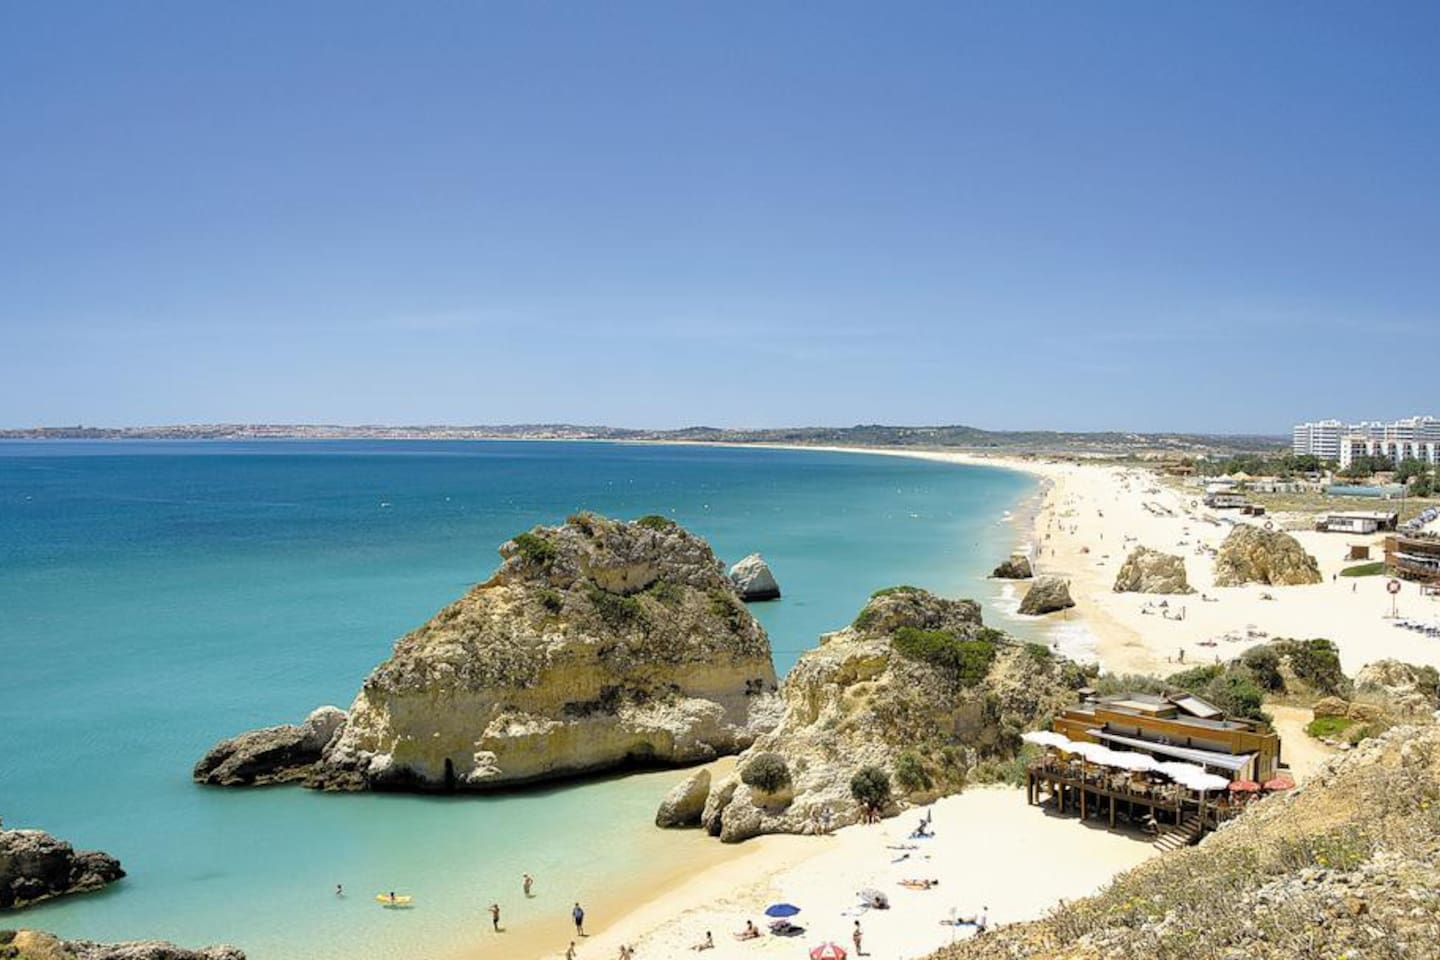 View of world class Alvor Beach. The apartment is located in the buildings showed on the right side of the photo.